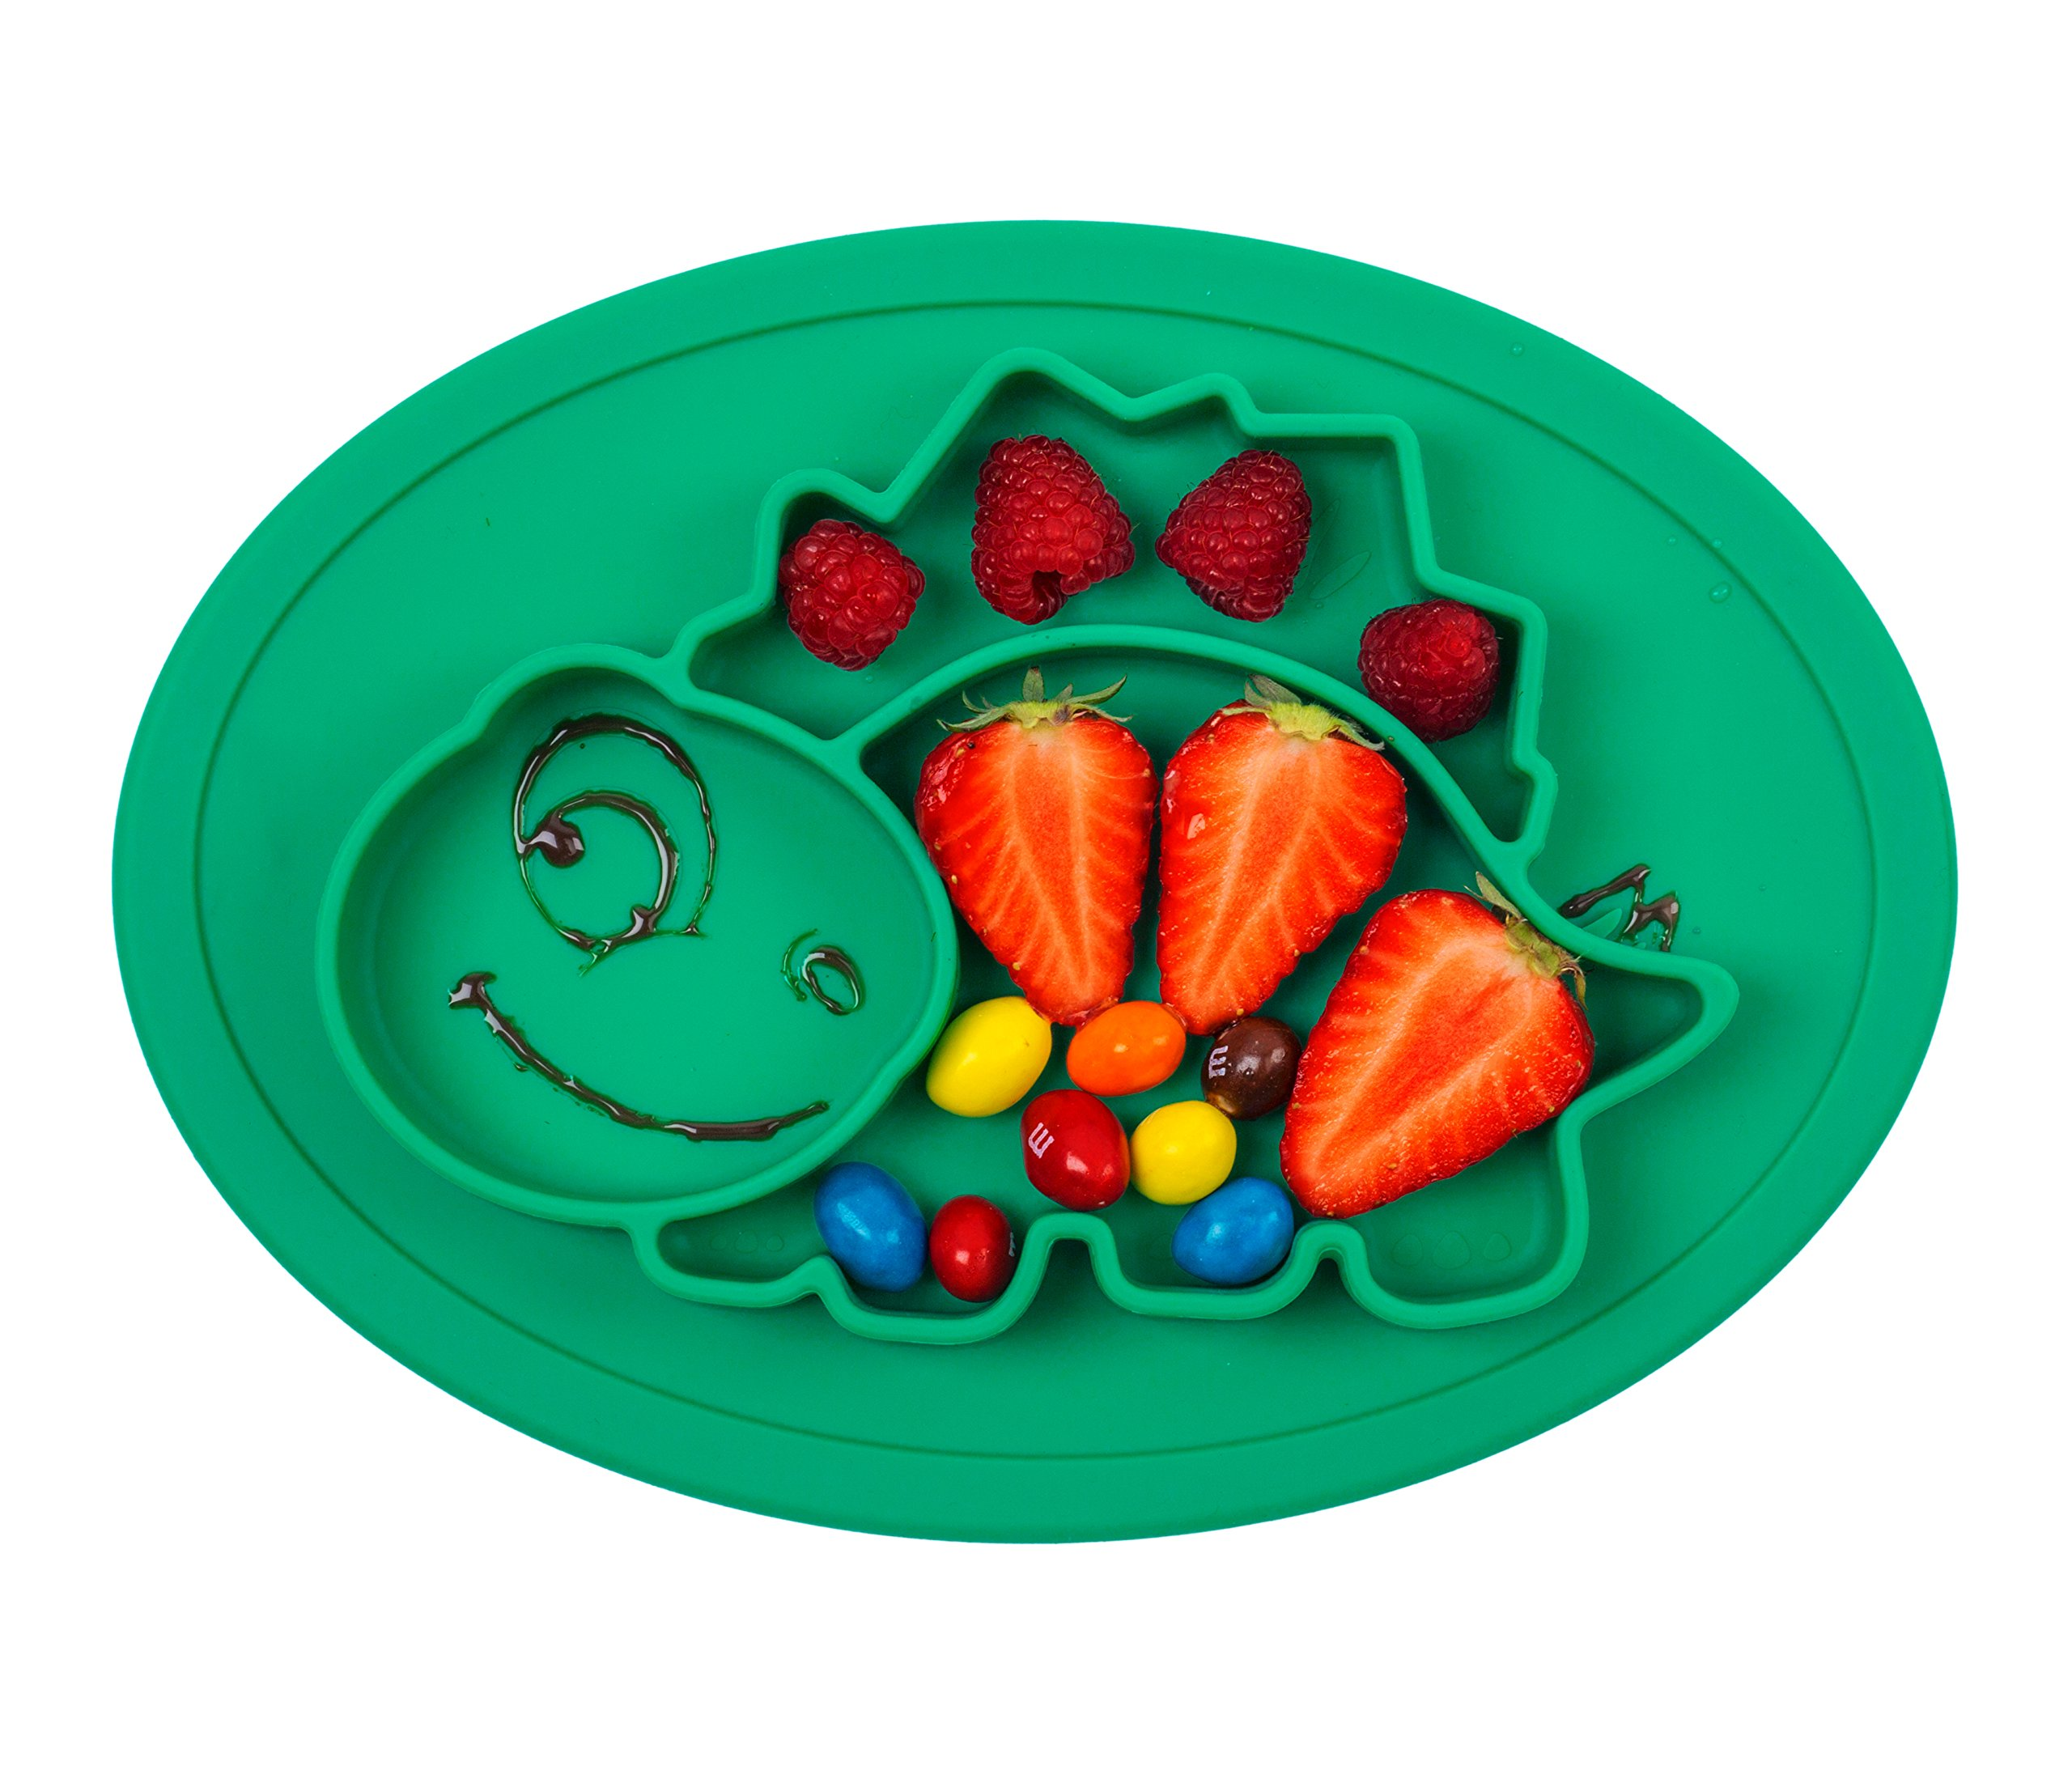 Qshare Toddler Plate, Baby Plate for Babies Toddlers and Kids, Portable BPA-Free FDA Approved Strong Suction Plates for Toddlers, Dishwasher and Microwave Safe Silicone Placemat 11x8x1 inch